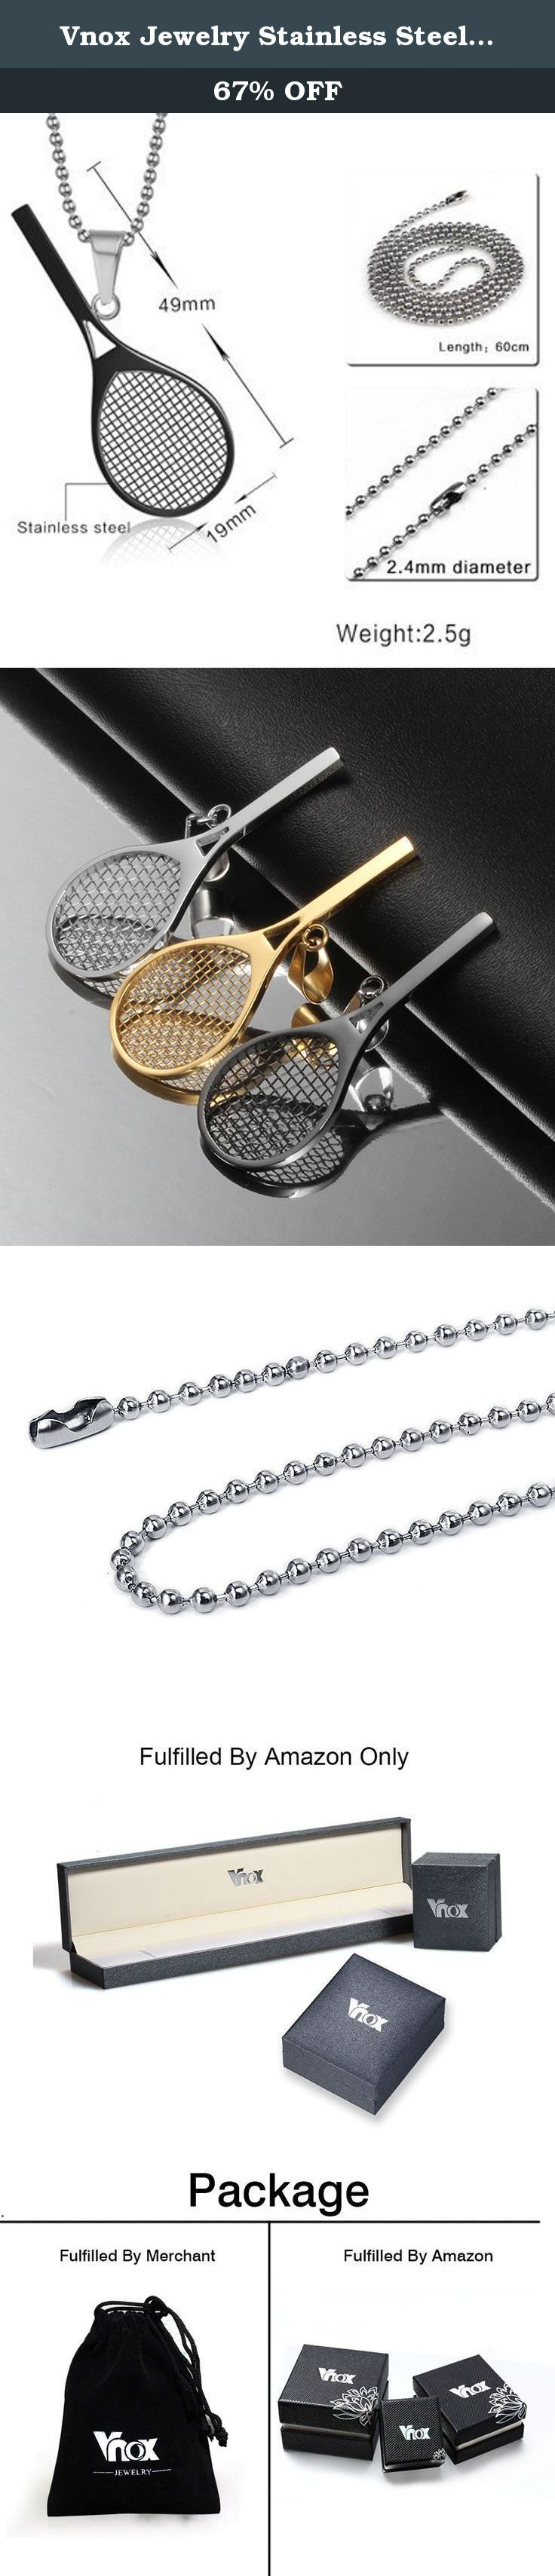 Vnox Jewelry Stainless Steel Tennis Racket Shape Pendant Necklace Perfect Gift for Him or Her,Black. The Vnox Discover the Vnox of elaborate and fashion jewelry. The high-quality jewelry featured in the Vnox offers great values at affordable Price, they mainly made of high quality Stainless Steel,Tungsten,Alloy and Leather. Find a special gift for a loved one or a beautiful piece that complements your personal style with jewelry from the Vnox. Stainless Steel Stainless steel has…